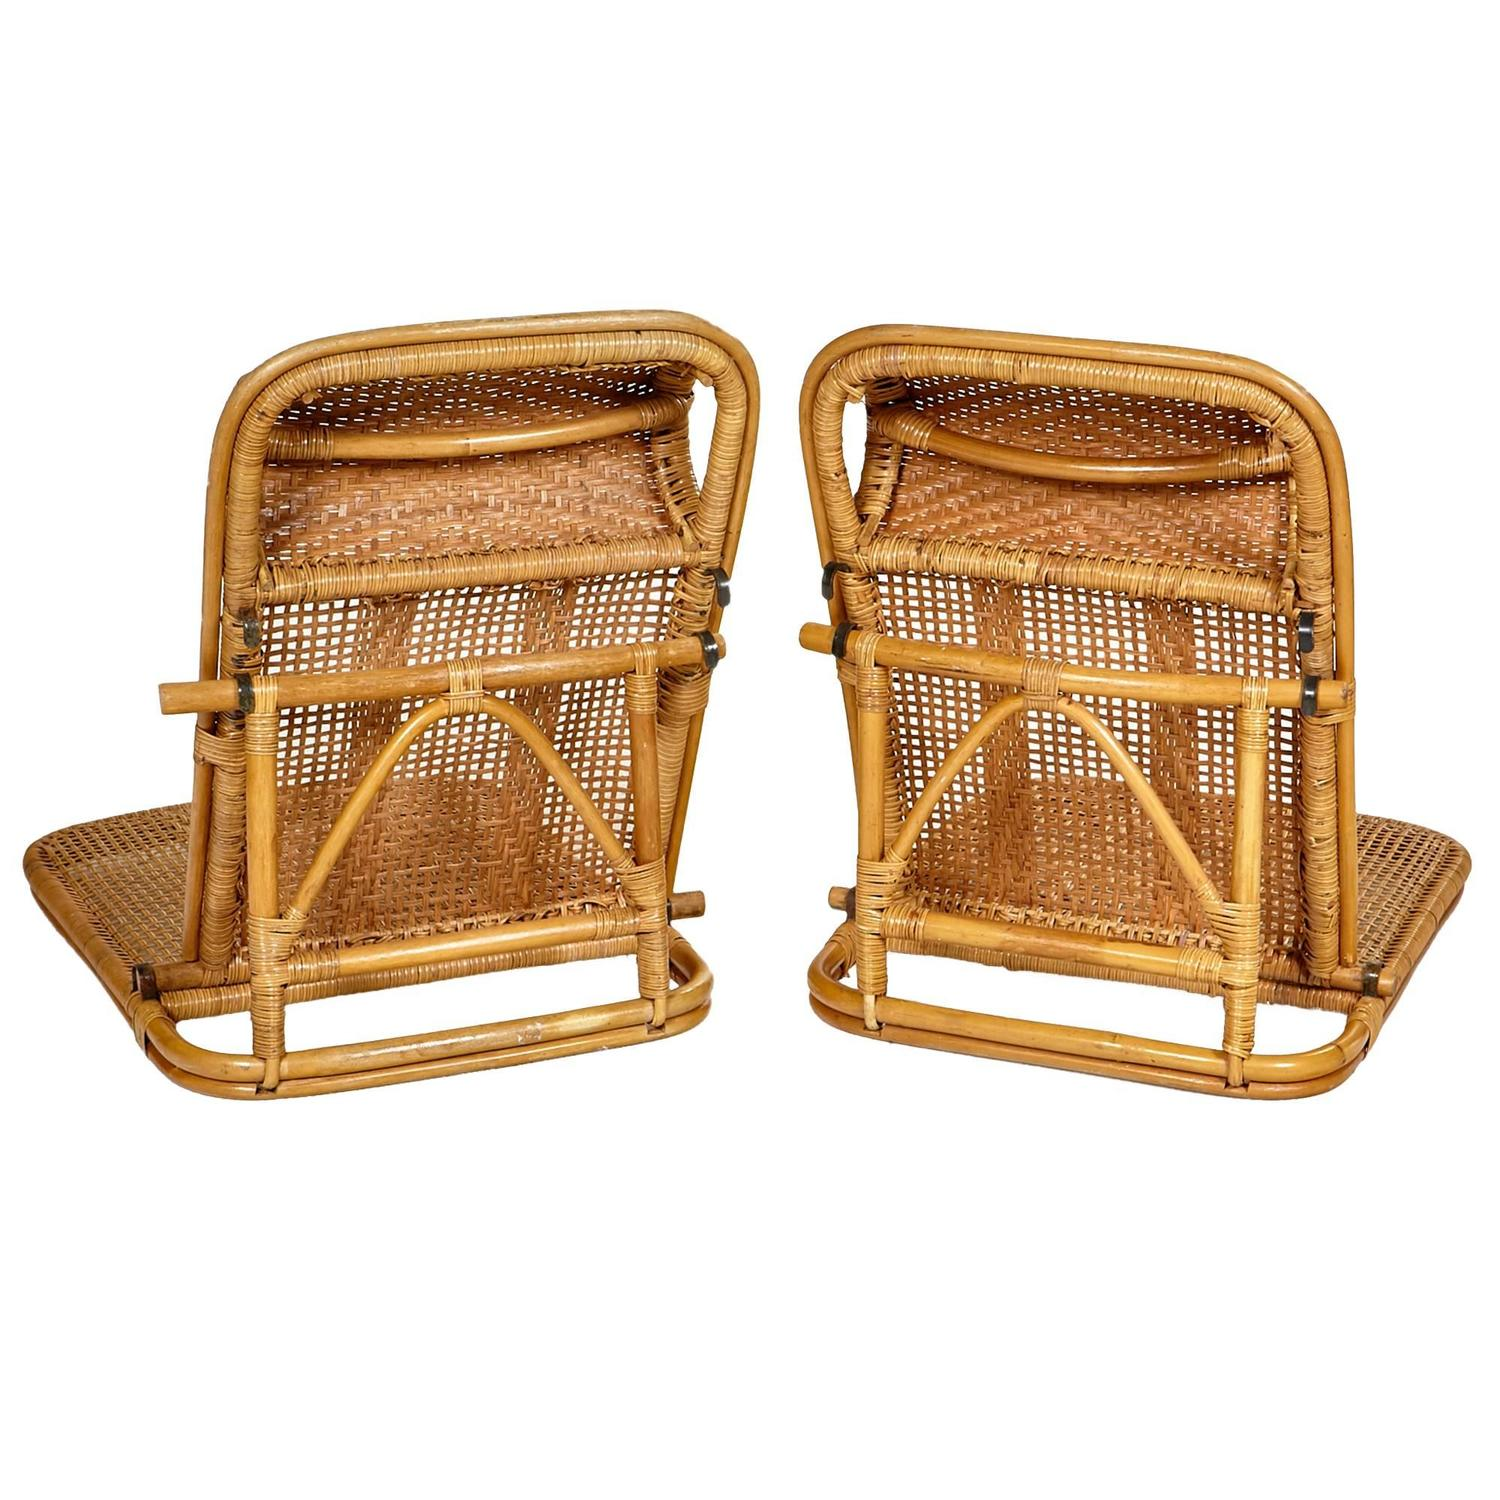 folding wicker chairs student table and chair set rattan beach pair at 1stdibs